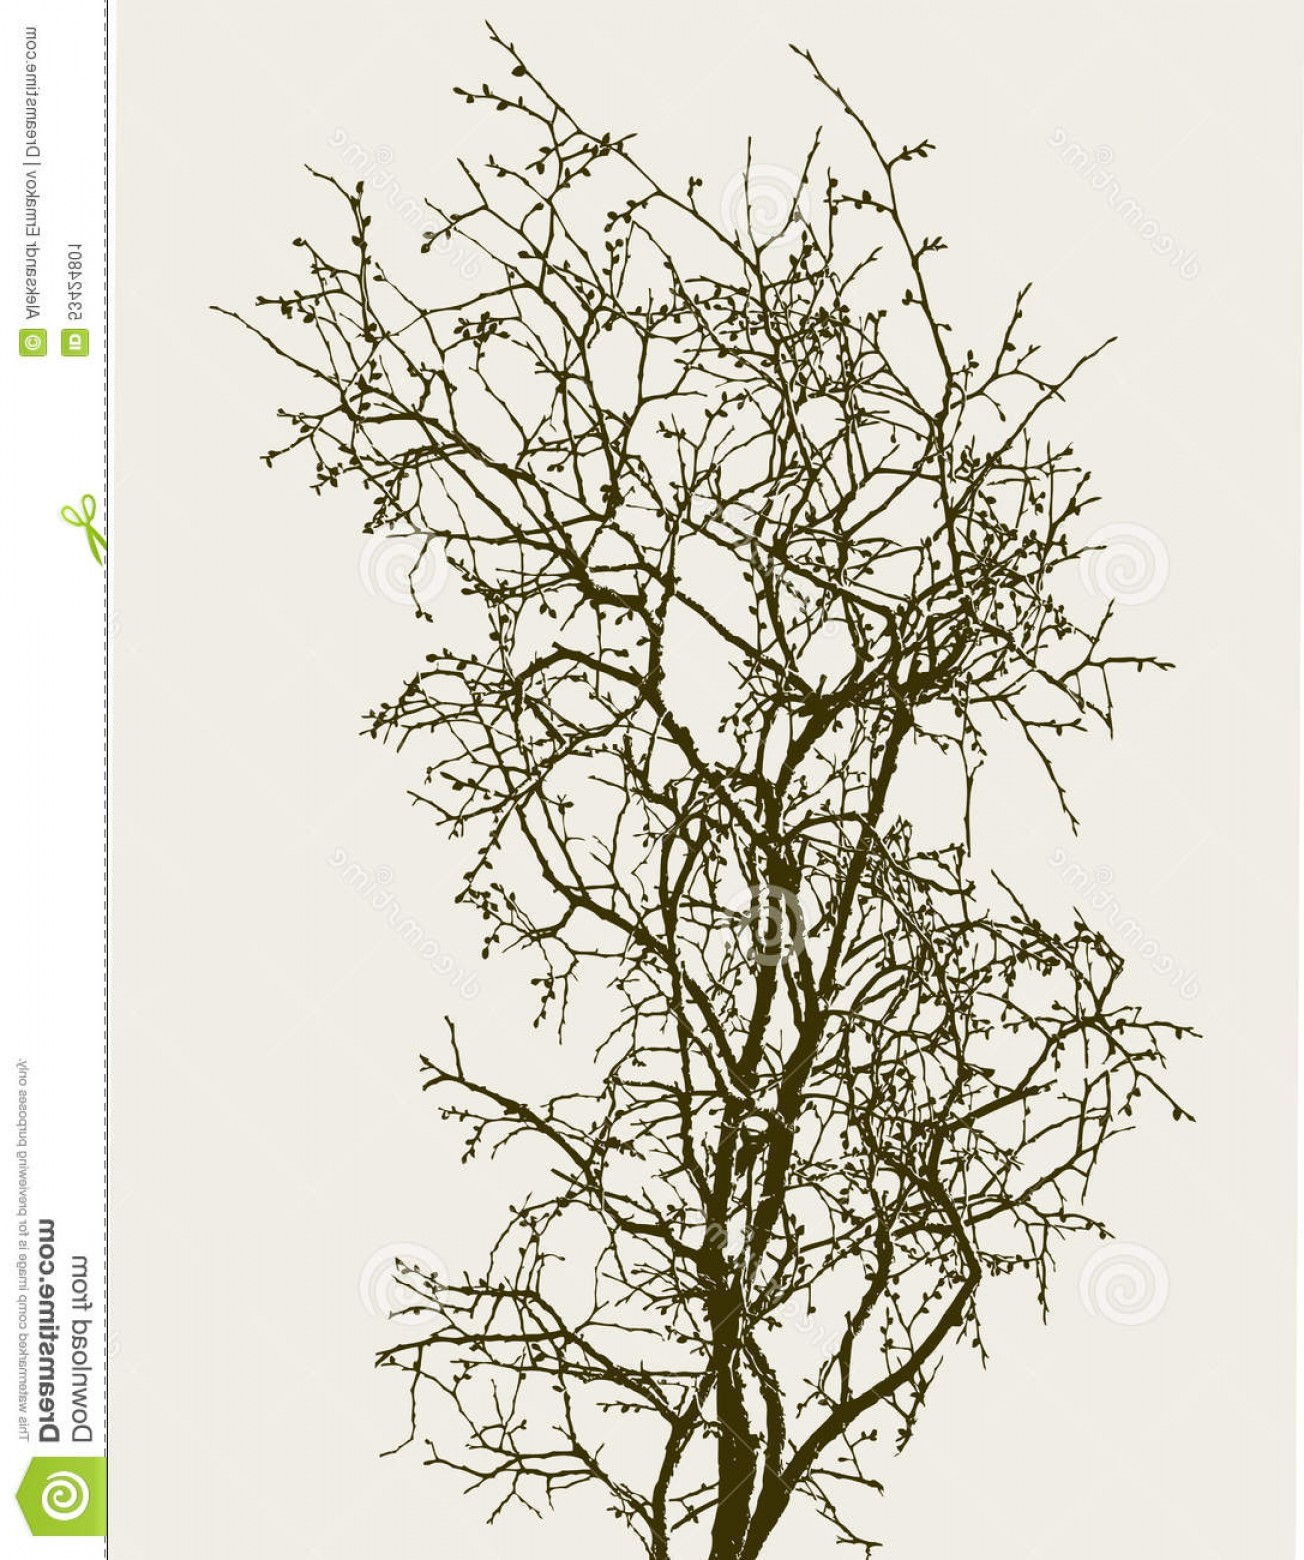 Sapling Vector Tree Silhouette Art: Stock Illustration Sapling Buds Vector Drawing Tree Spring Image